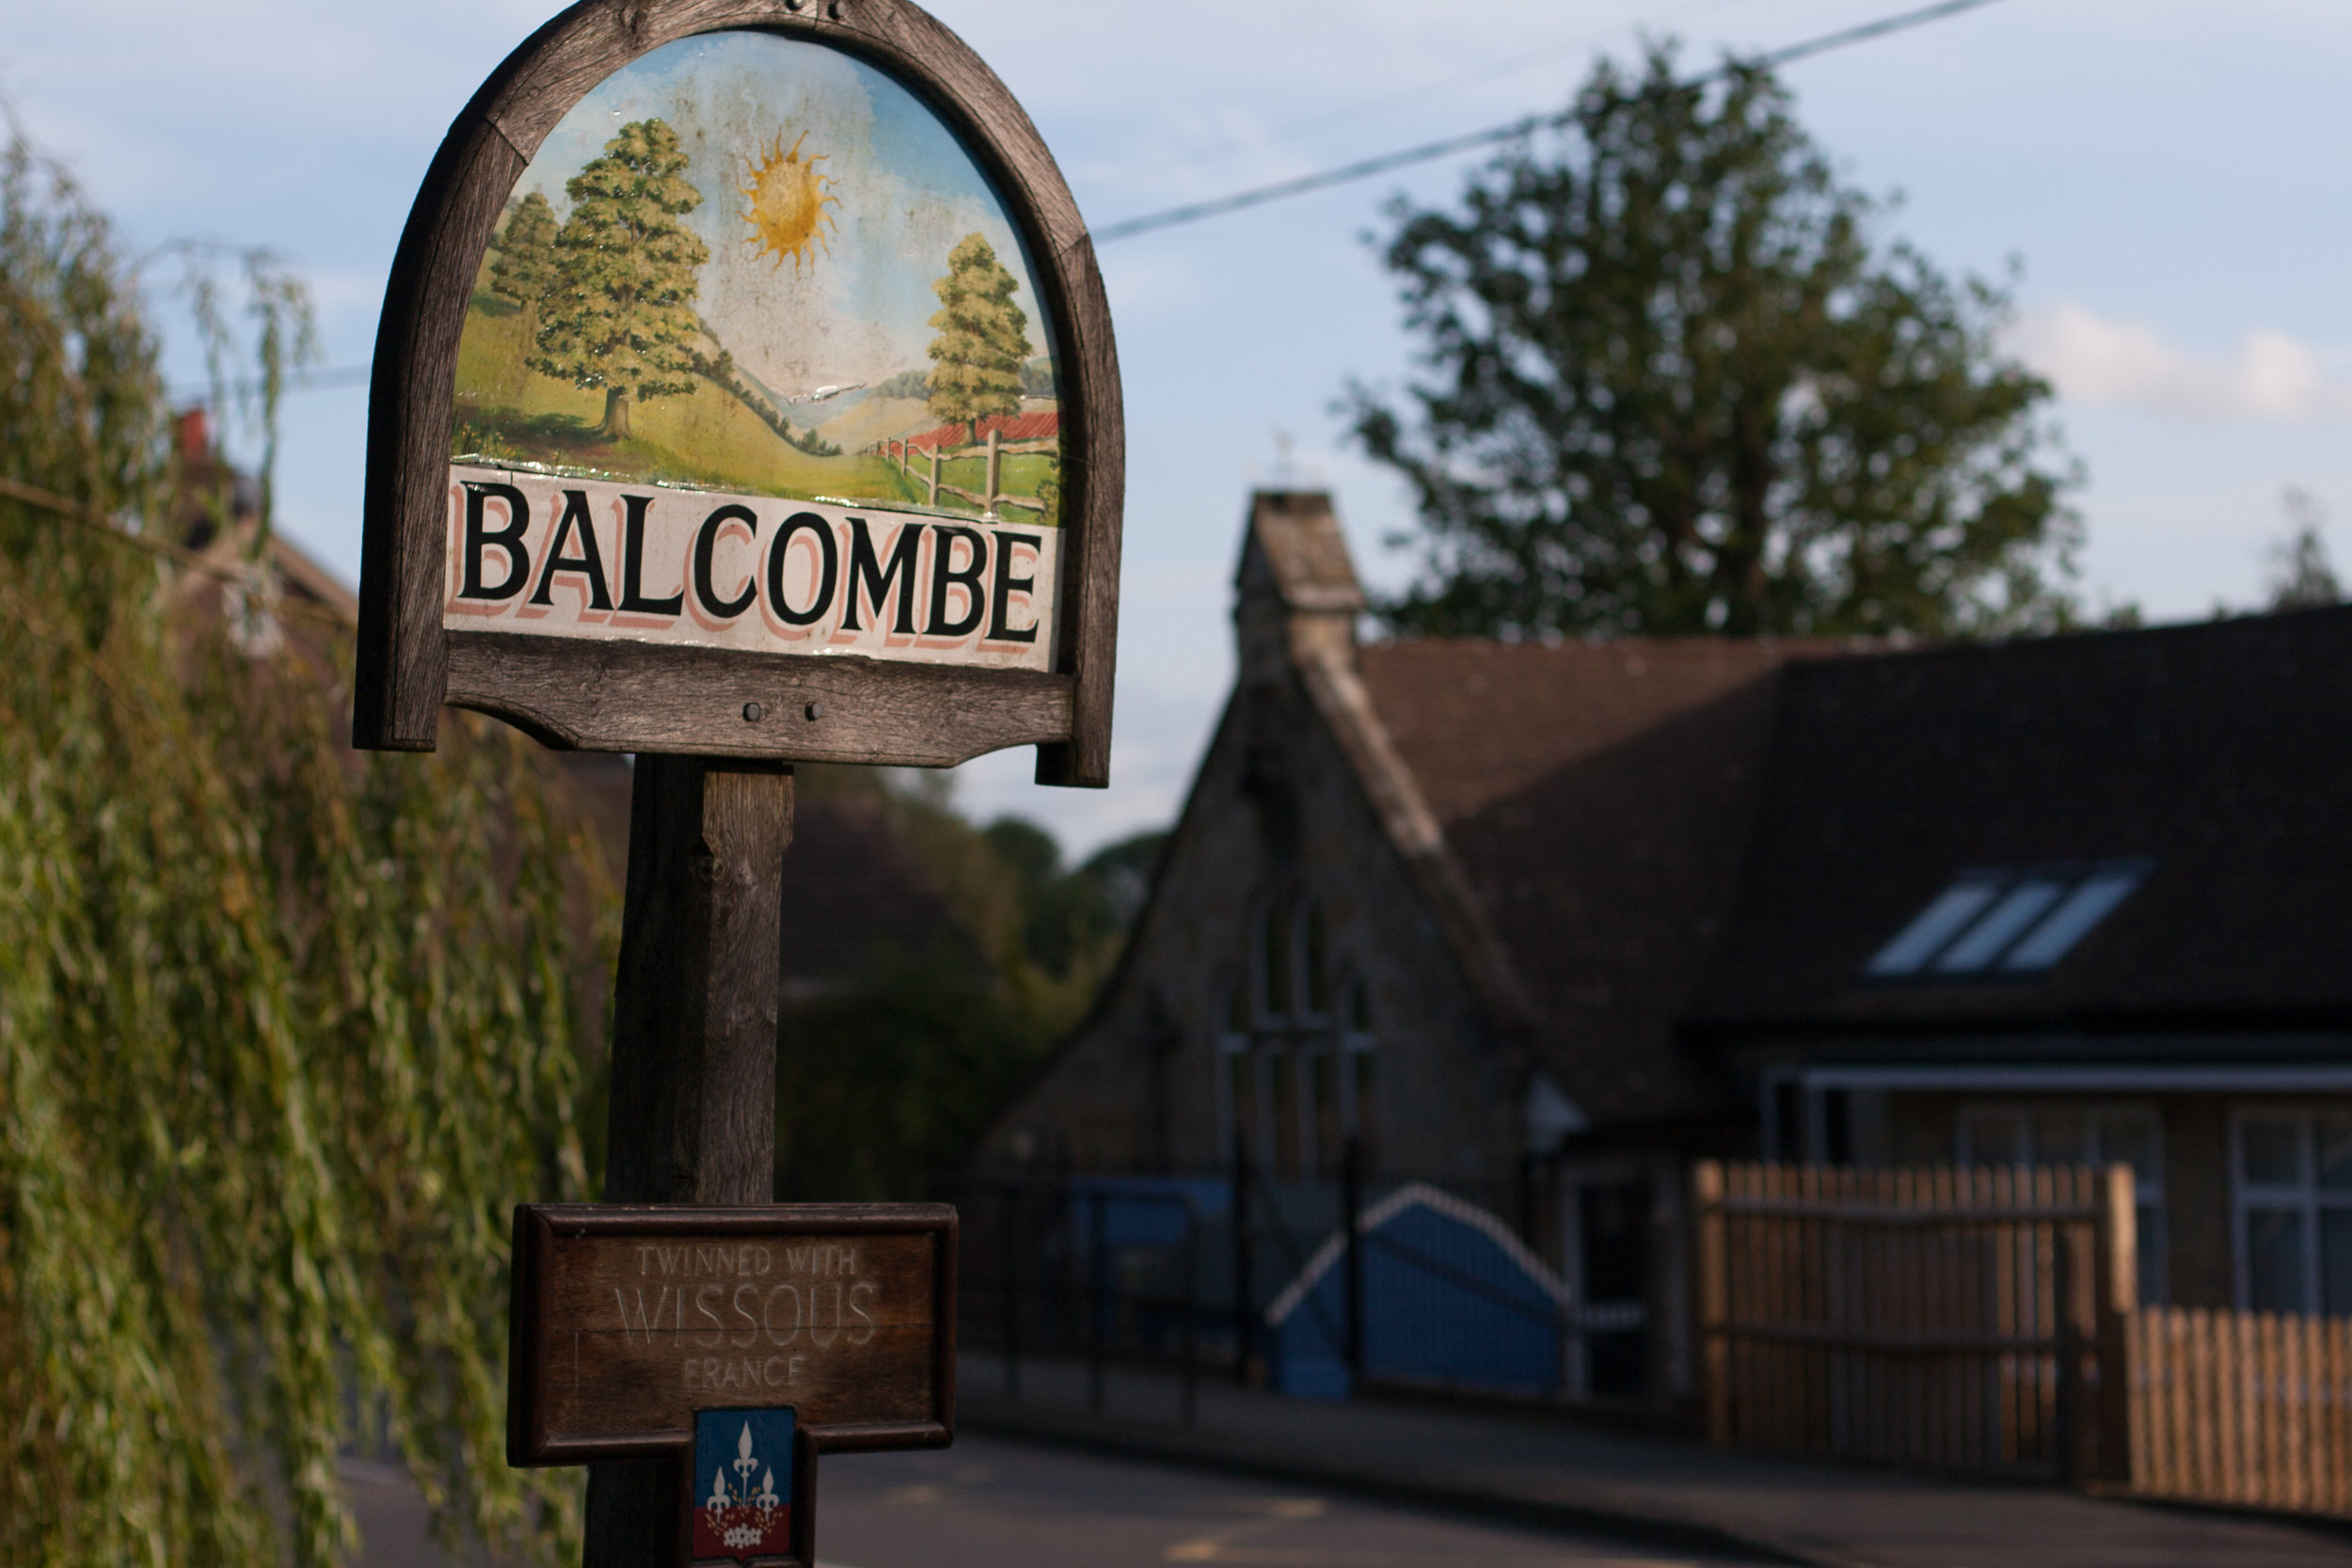 Back Balcombe - Our campaign to help Balcombe go solar through community energy2013 - 2016